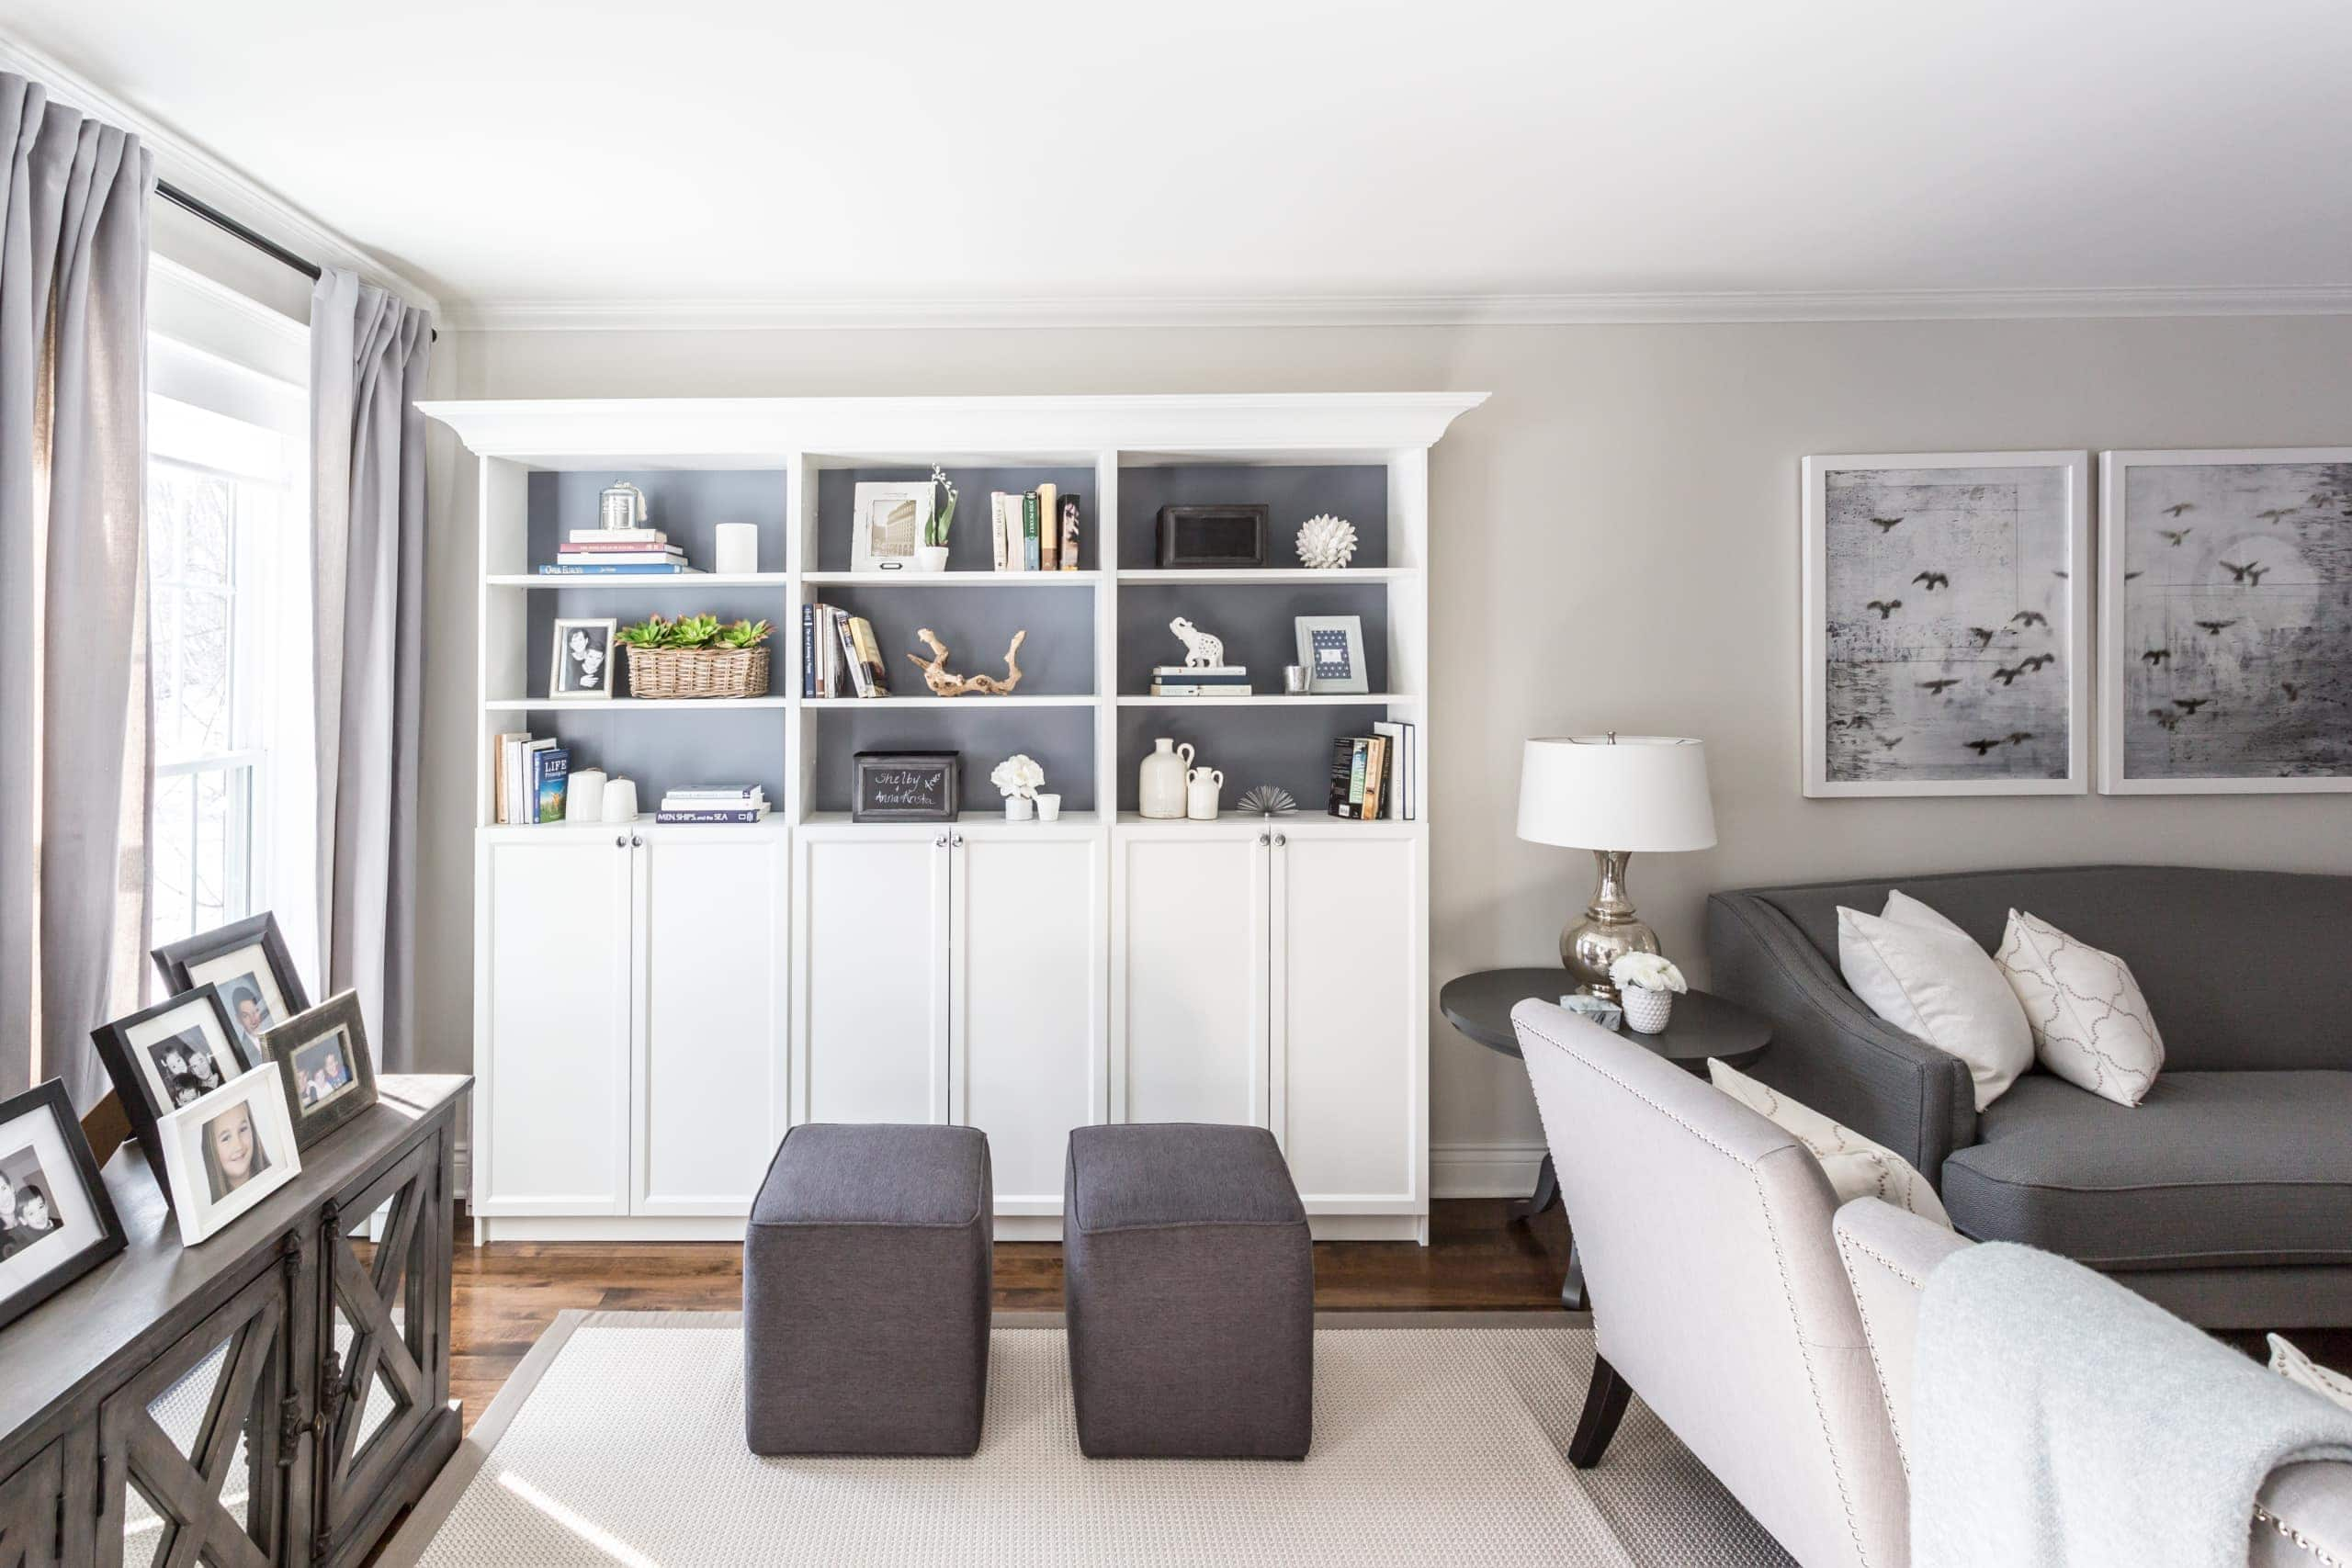 White bookcases with doors within a living room